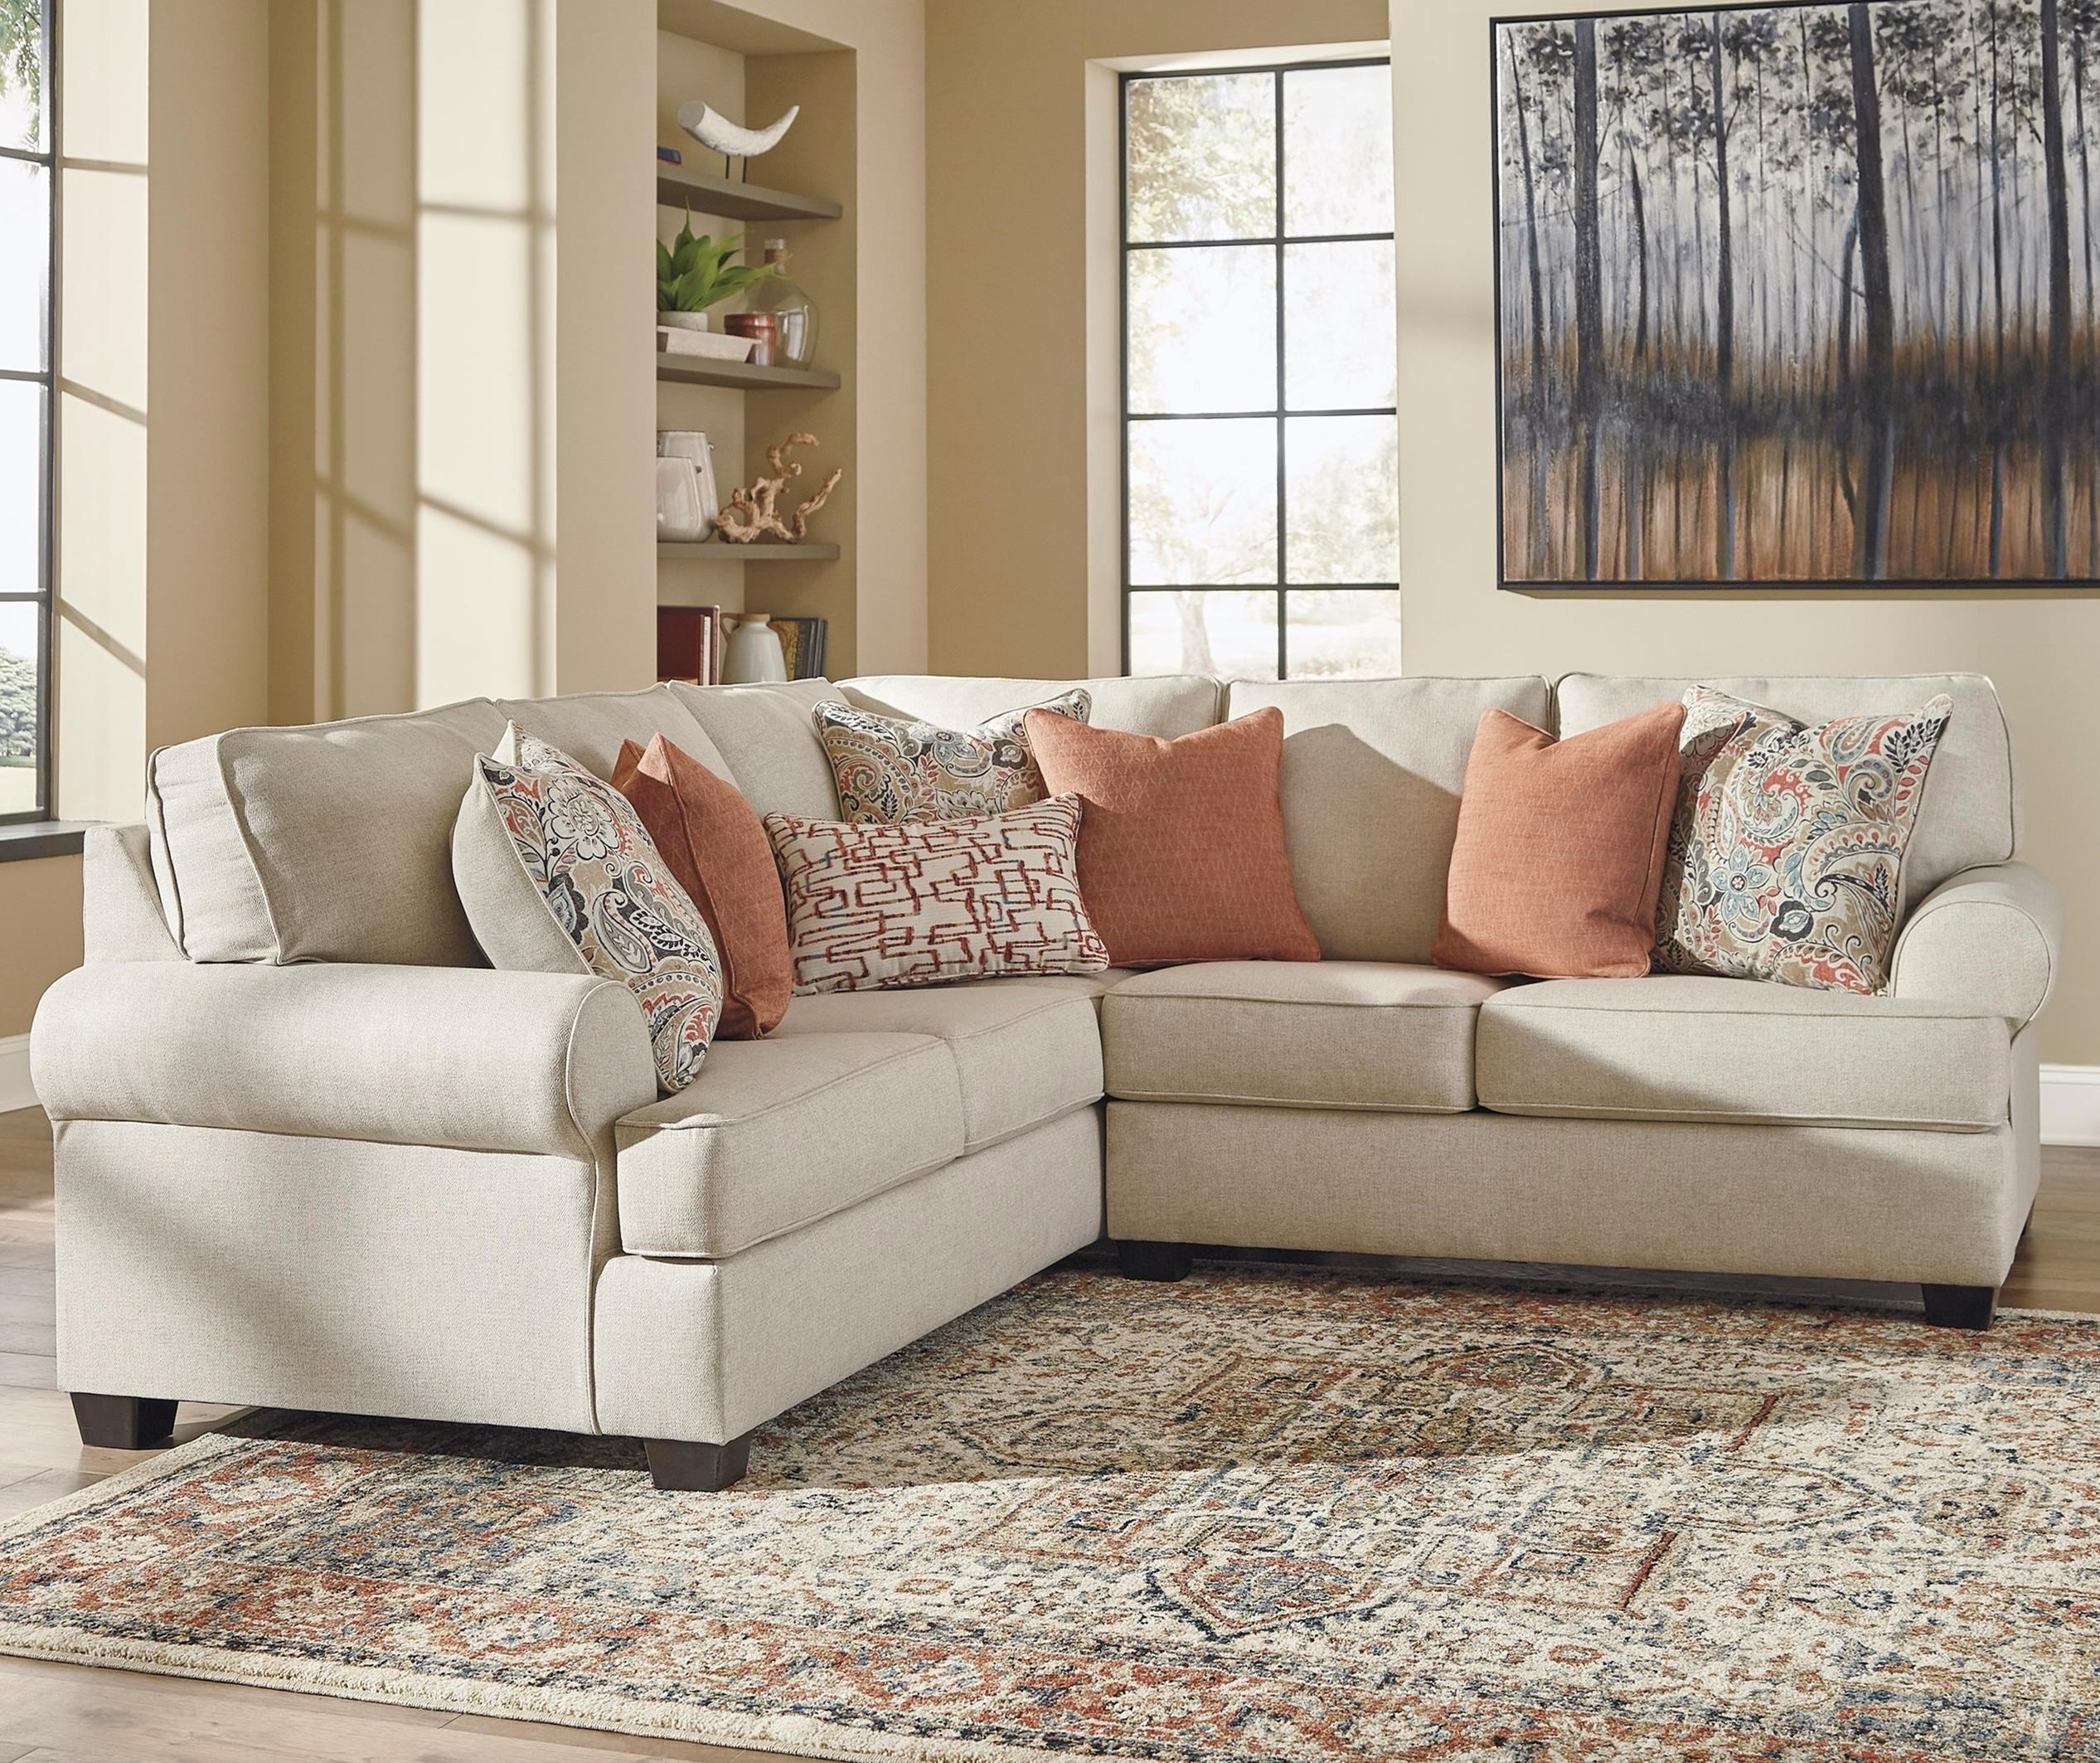 Amici 2-Piece Corner Sectional by Signature Design at Fisher Home Furnishings